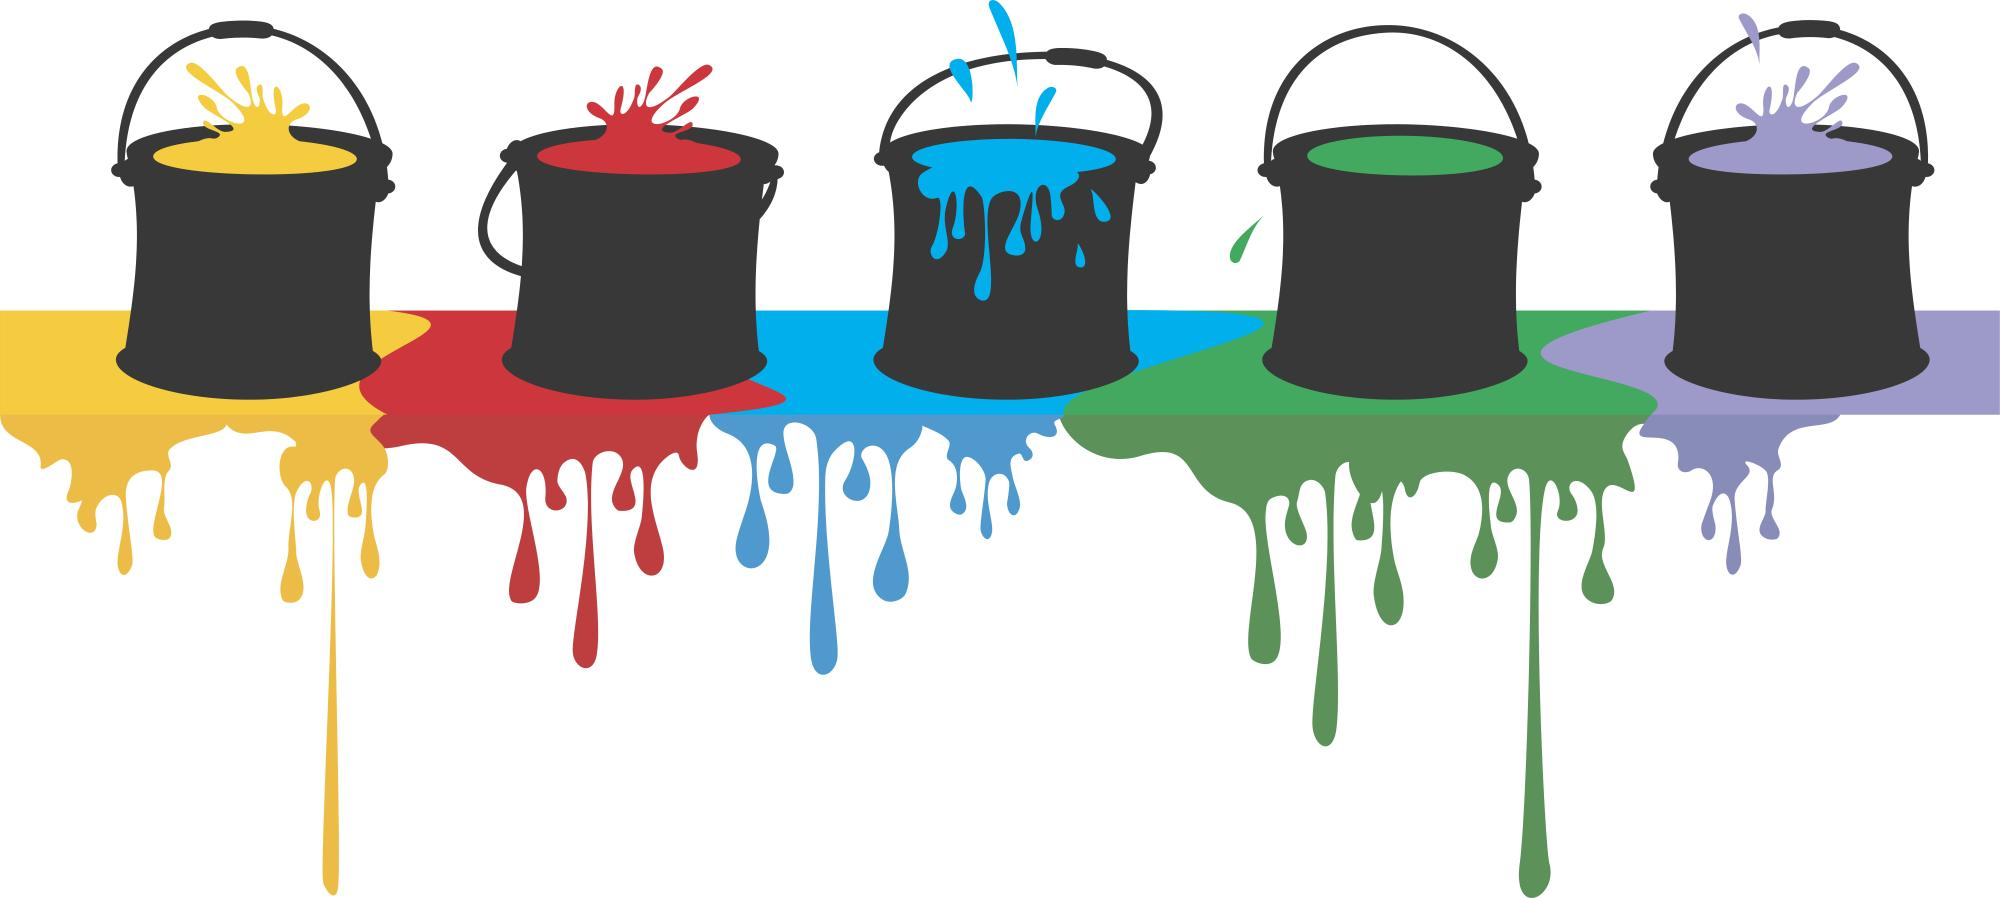 Powder paint clipart freeuse download Painting Services, industrial painting, wet paint, powder ... freeuse download